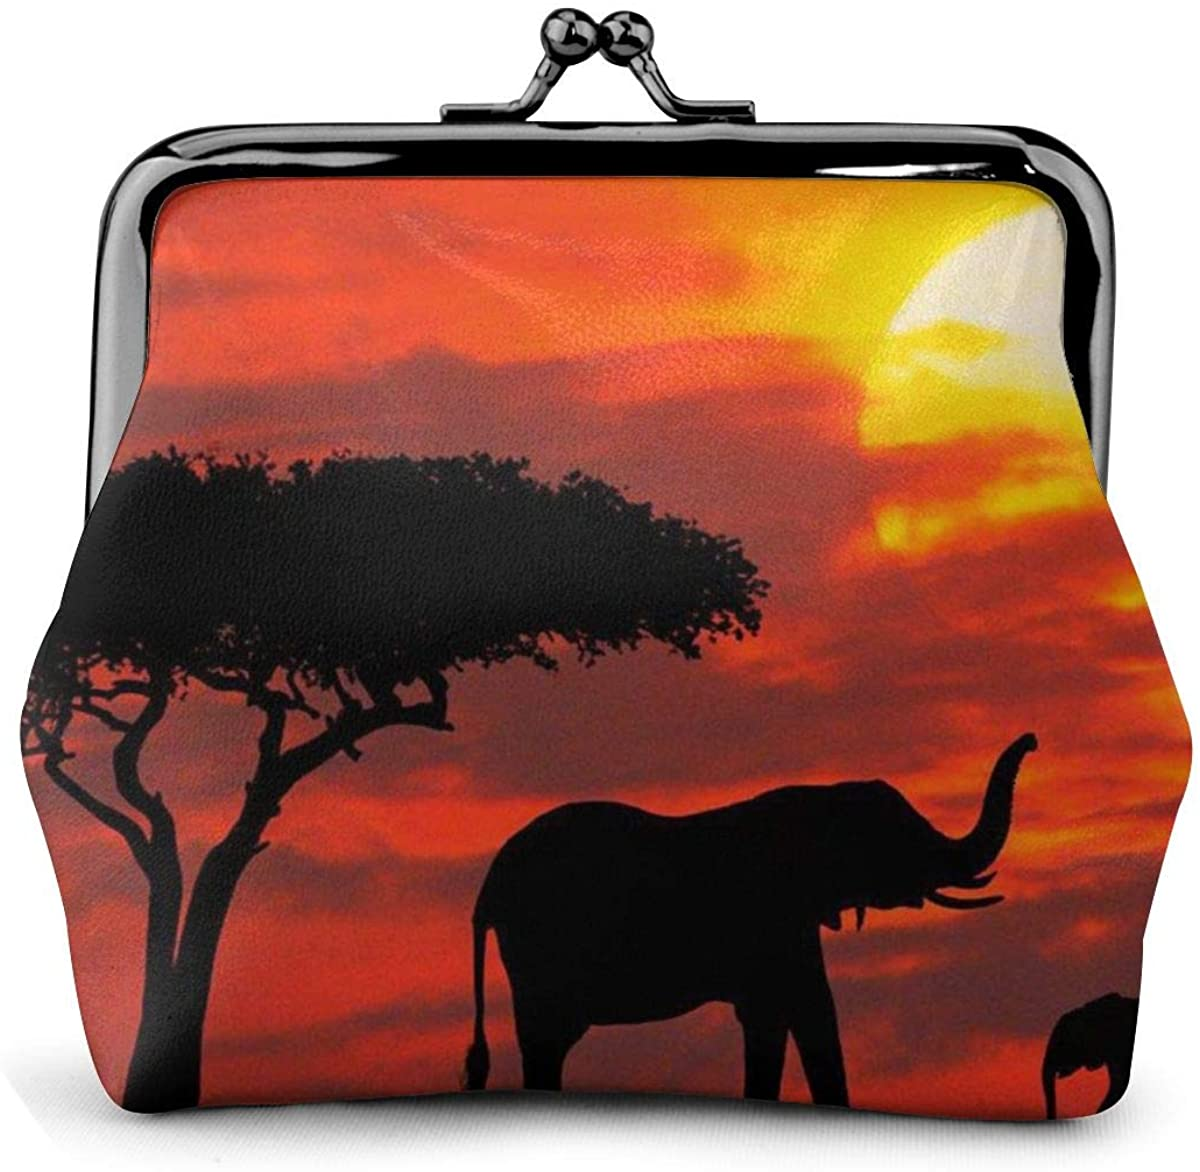 Elephant Sunset Pu Leather Exquisite Buckle Coin Purses Vintage Pouch Classic Kiss-Lock Change Purse Wallets Gift